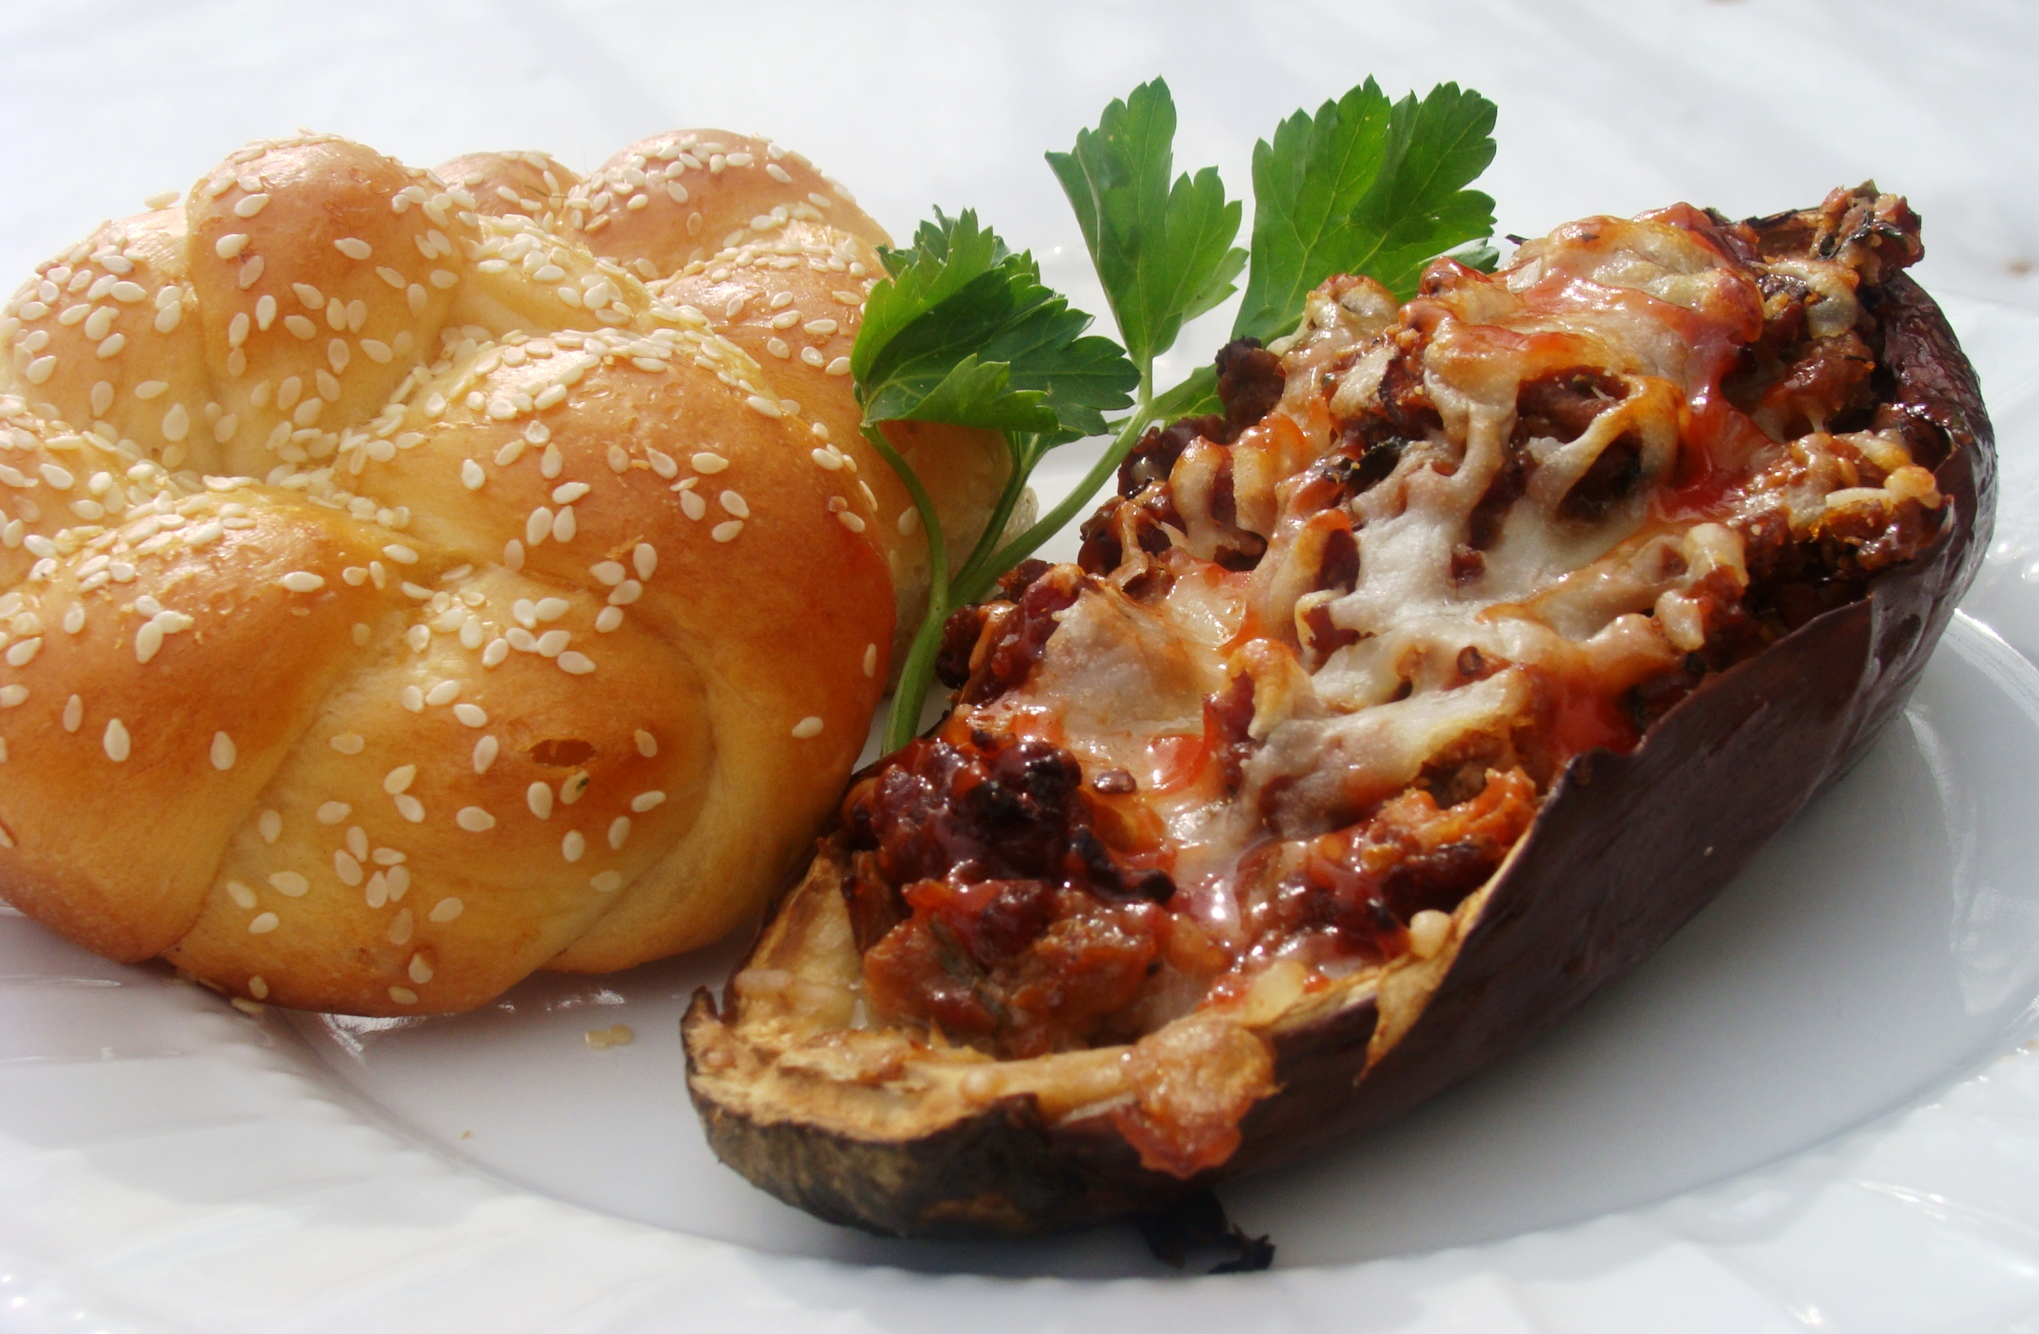 Macedonian Food, Cuisine and Recipes